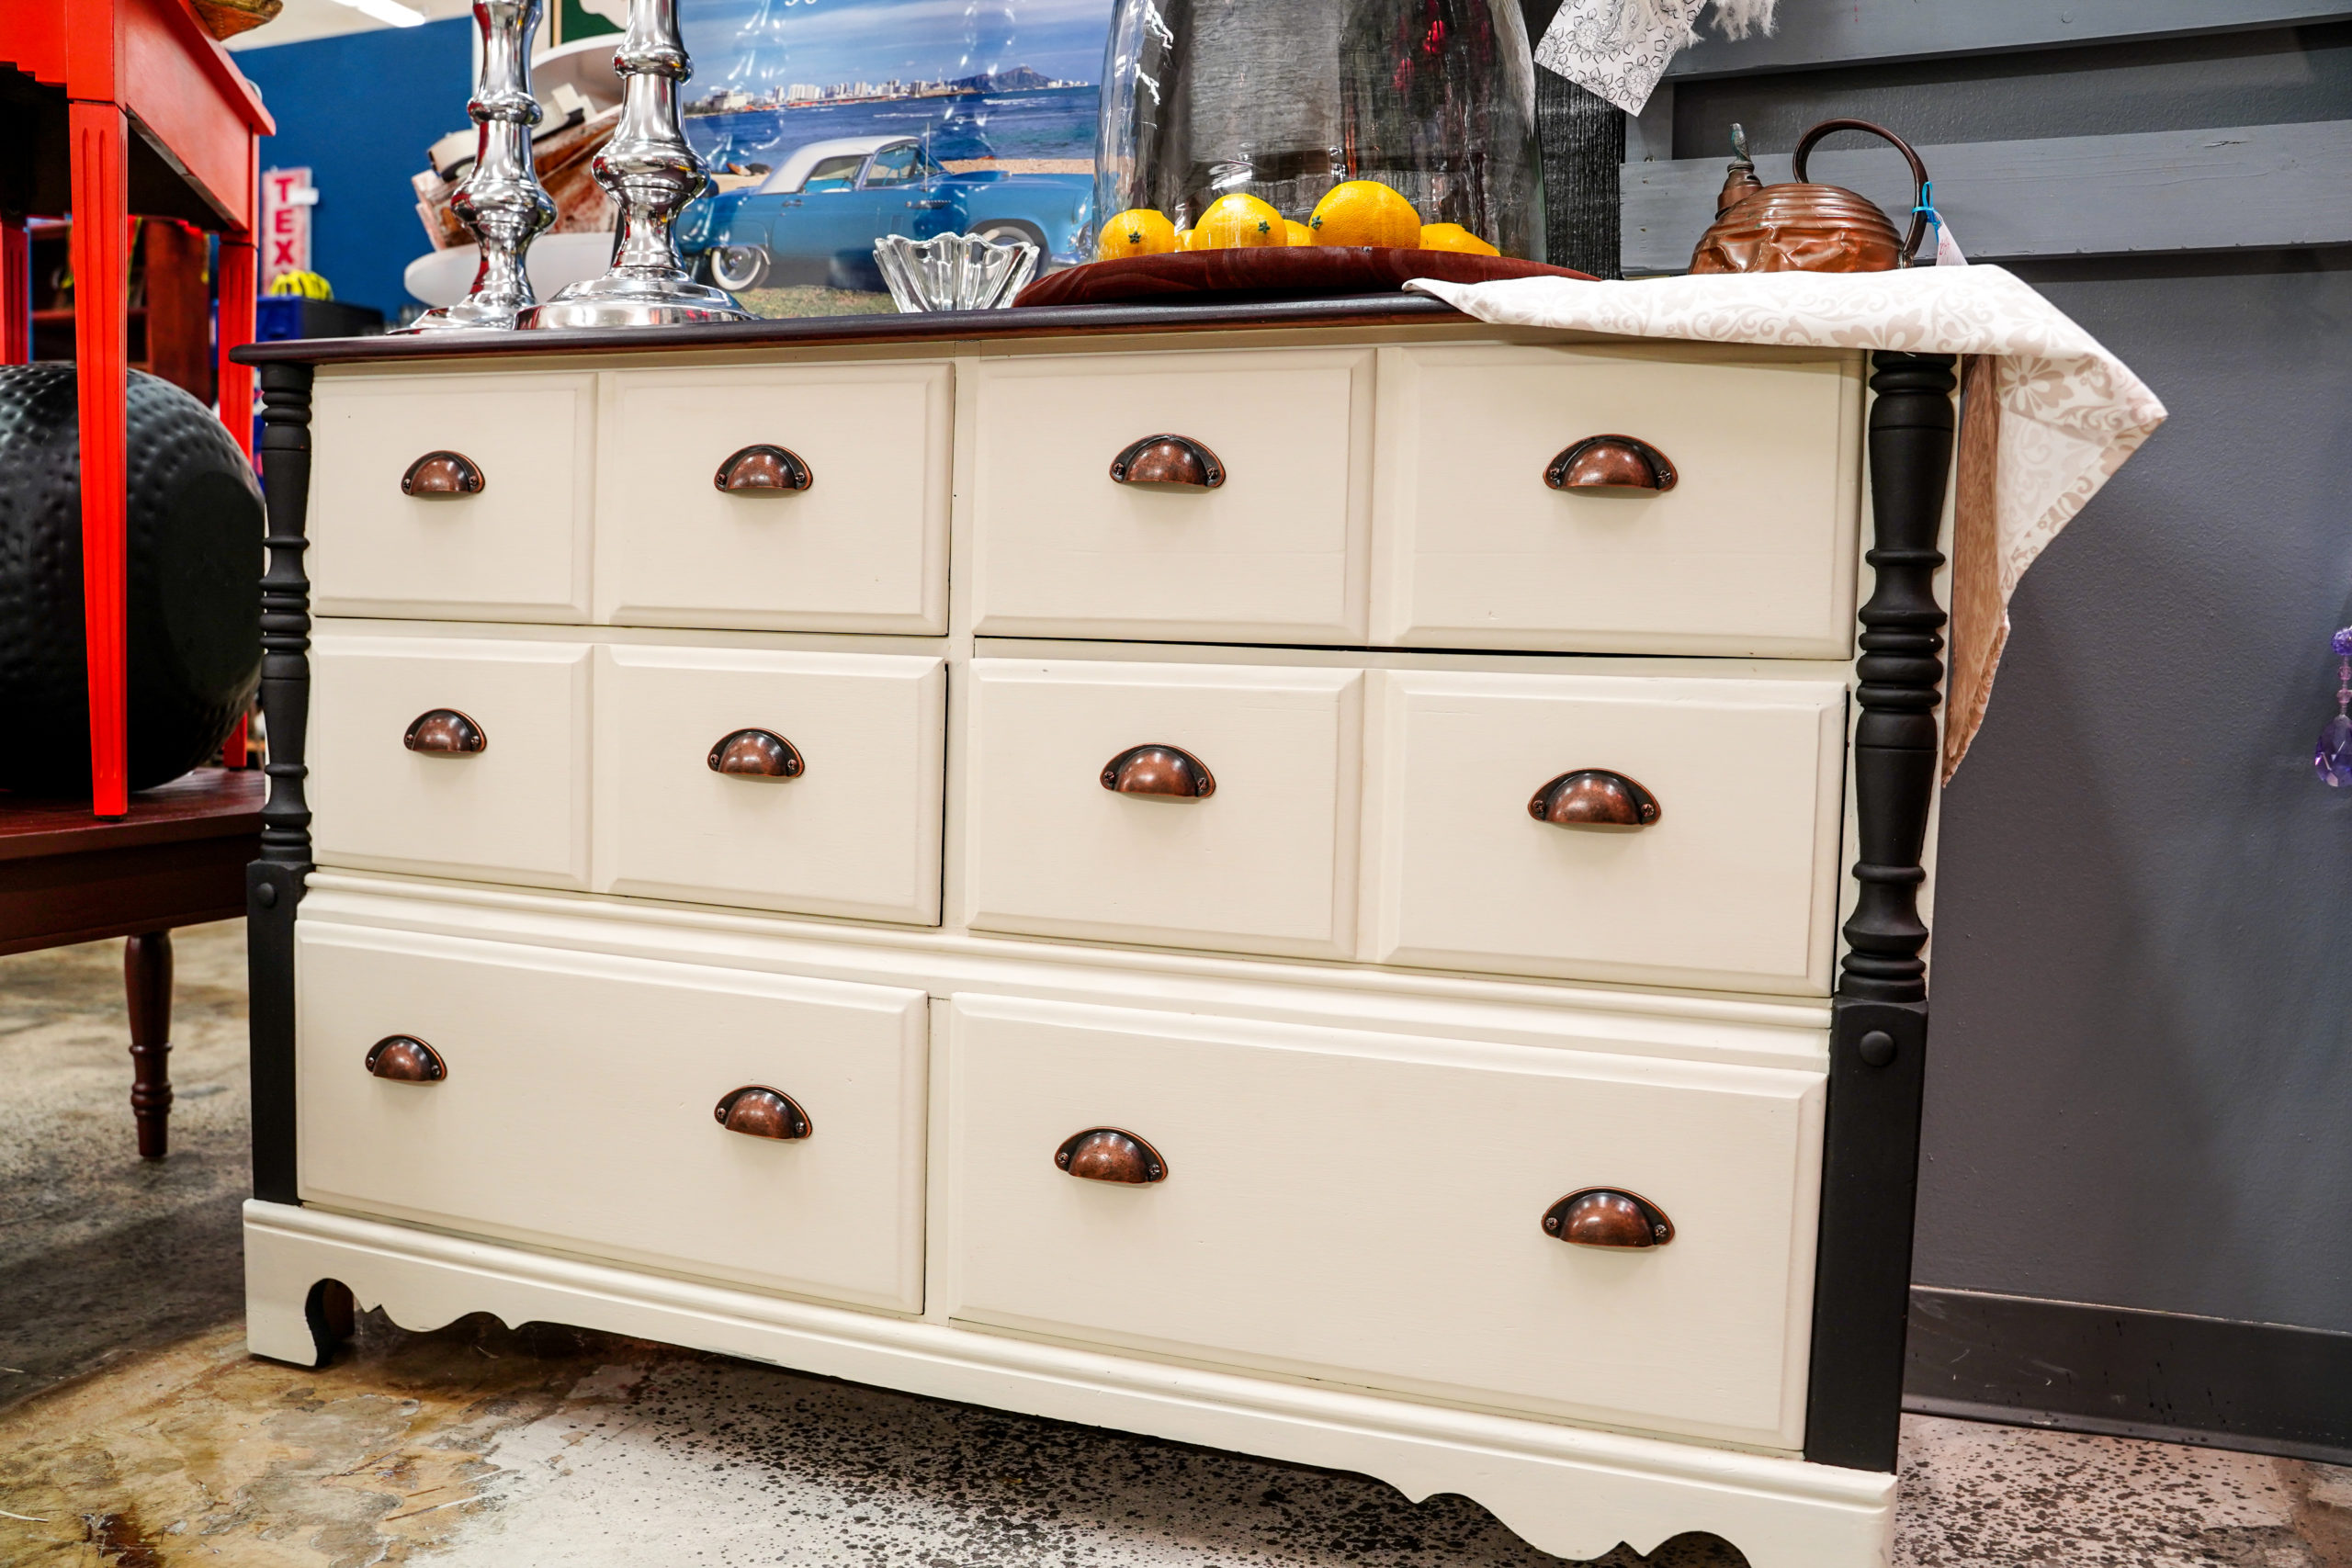 Add Character to Your Home with Upcycled and Restored Furniture from Bless Your Heart Designs